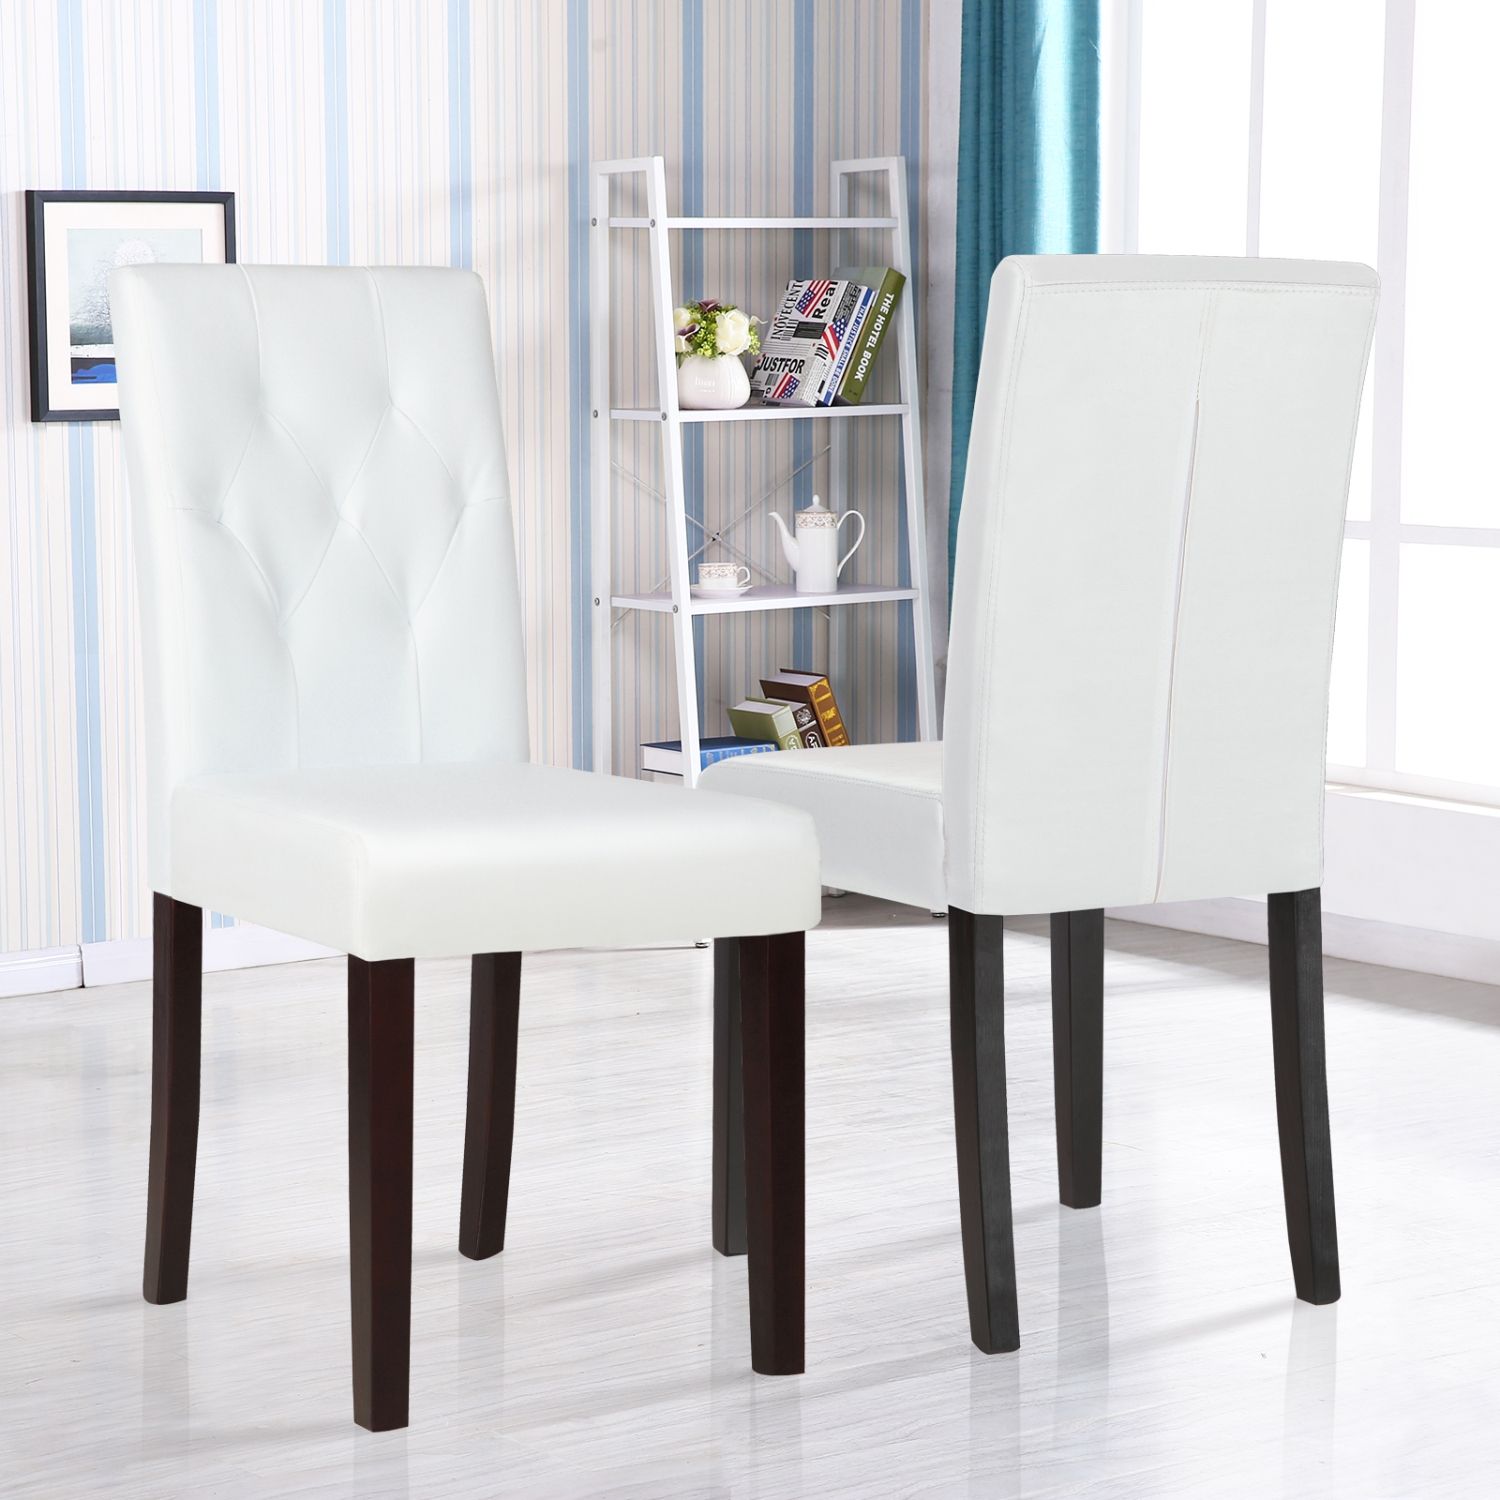 White Leather Dining Room Set: Set Of 2 Ivory White Leather Dining Room Chair Kitchen